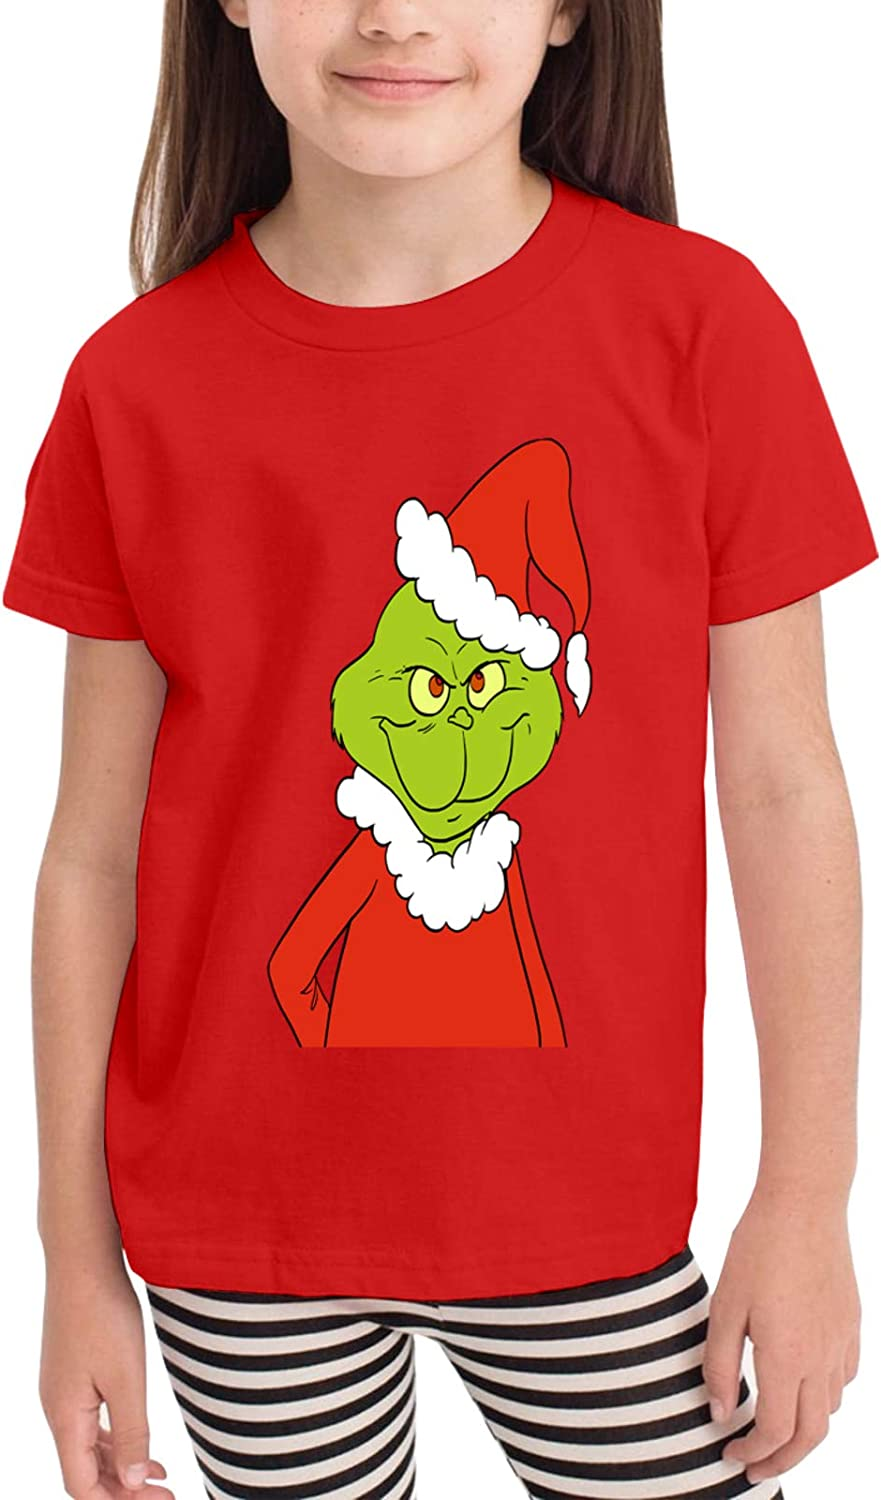 Fp-Linked Toddler/Infant Crewneck Short Sleeve Shirt Grinches T-Shirt for 2-6 Toddlers White